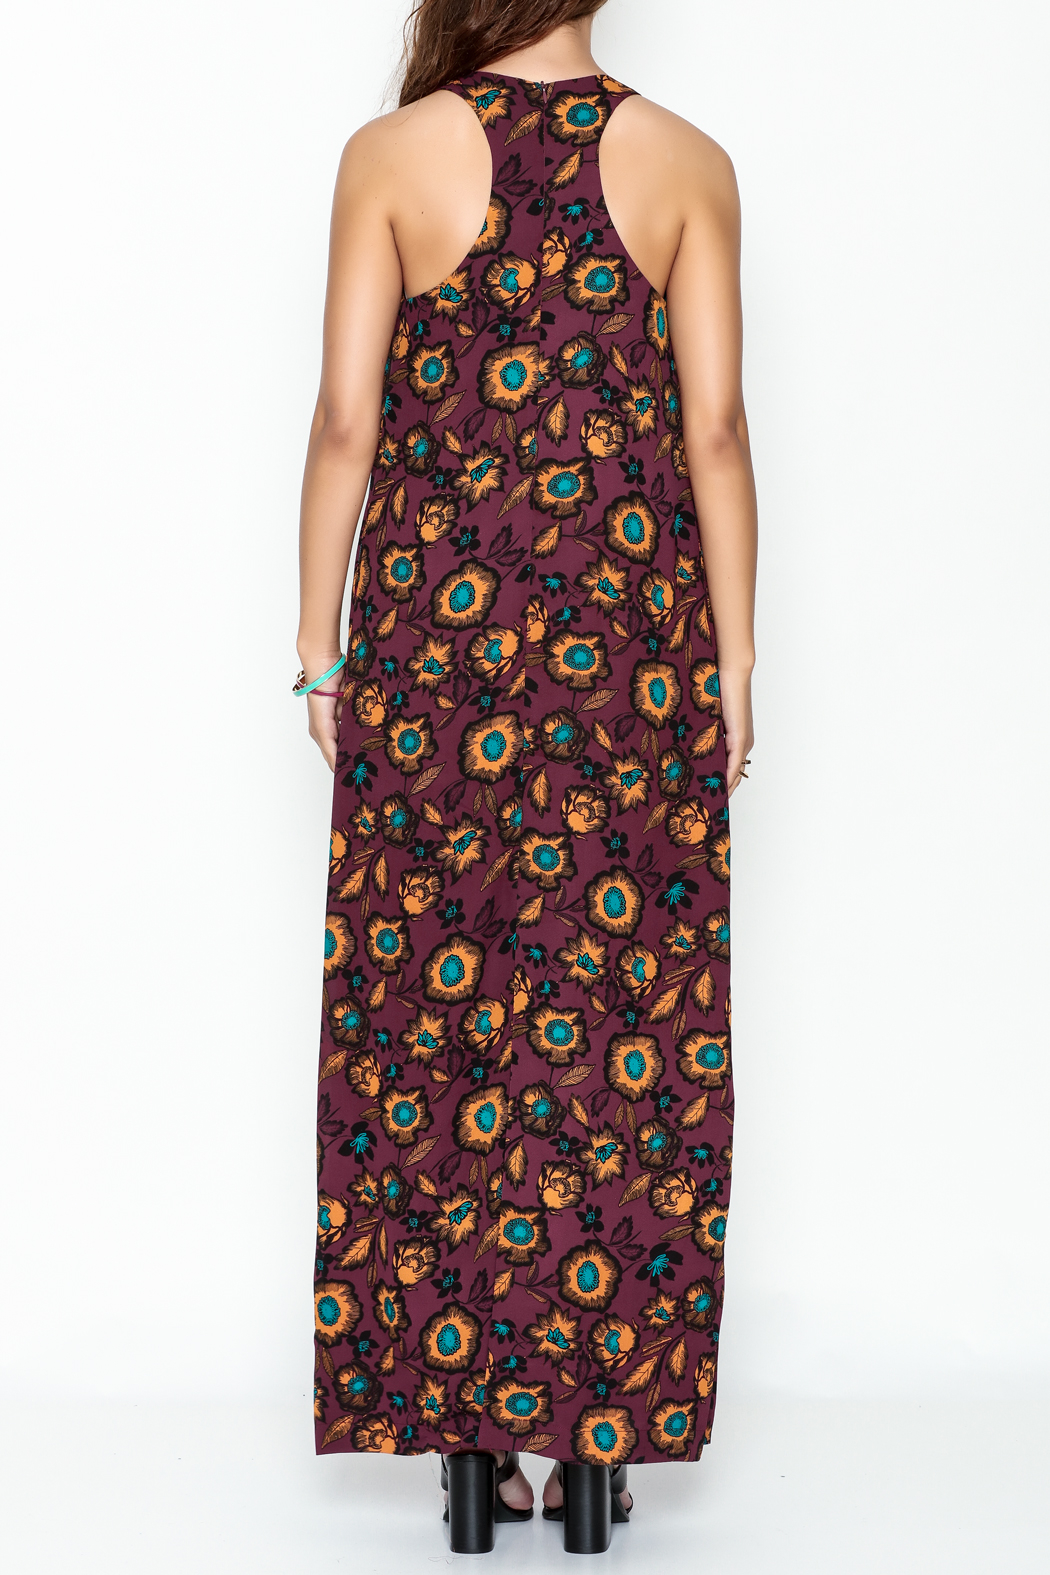 Everly Burgundy Floral Maxi Dress - Back Cropped Image